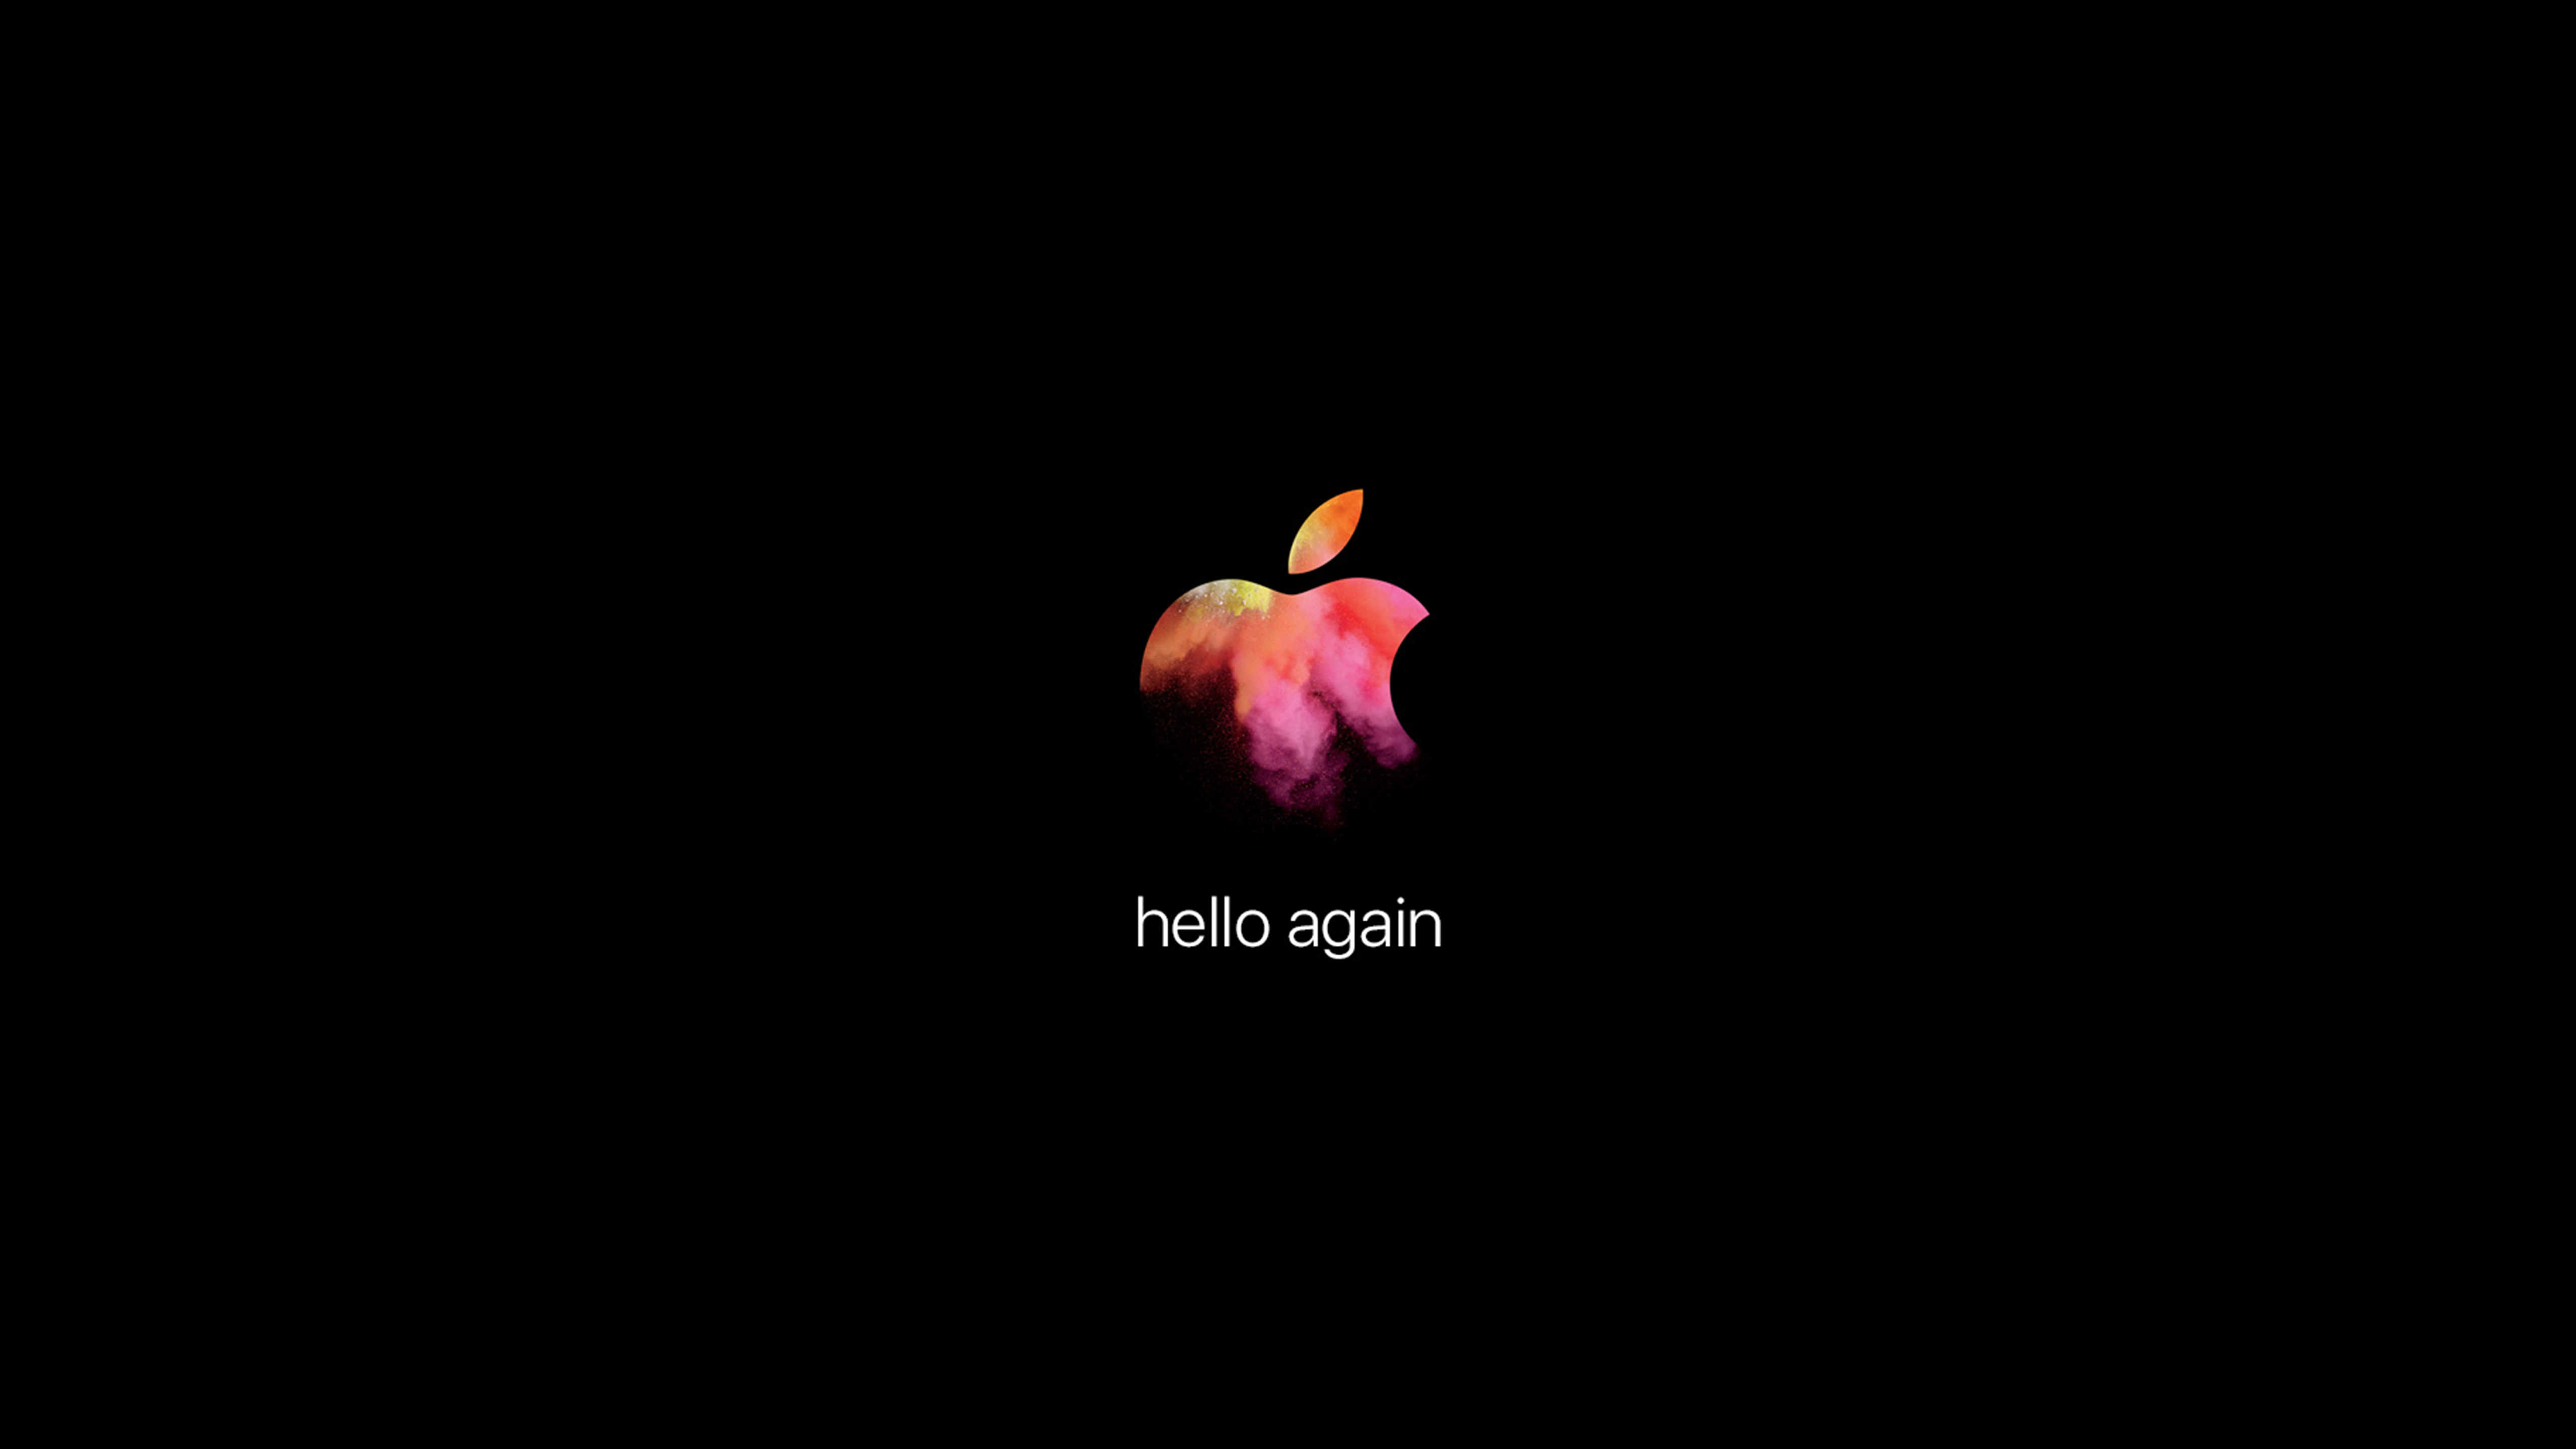 get ready for apple's mac event with these wallpapers | cult of mac